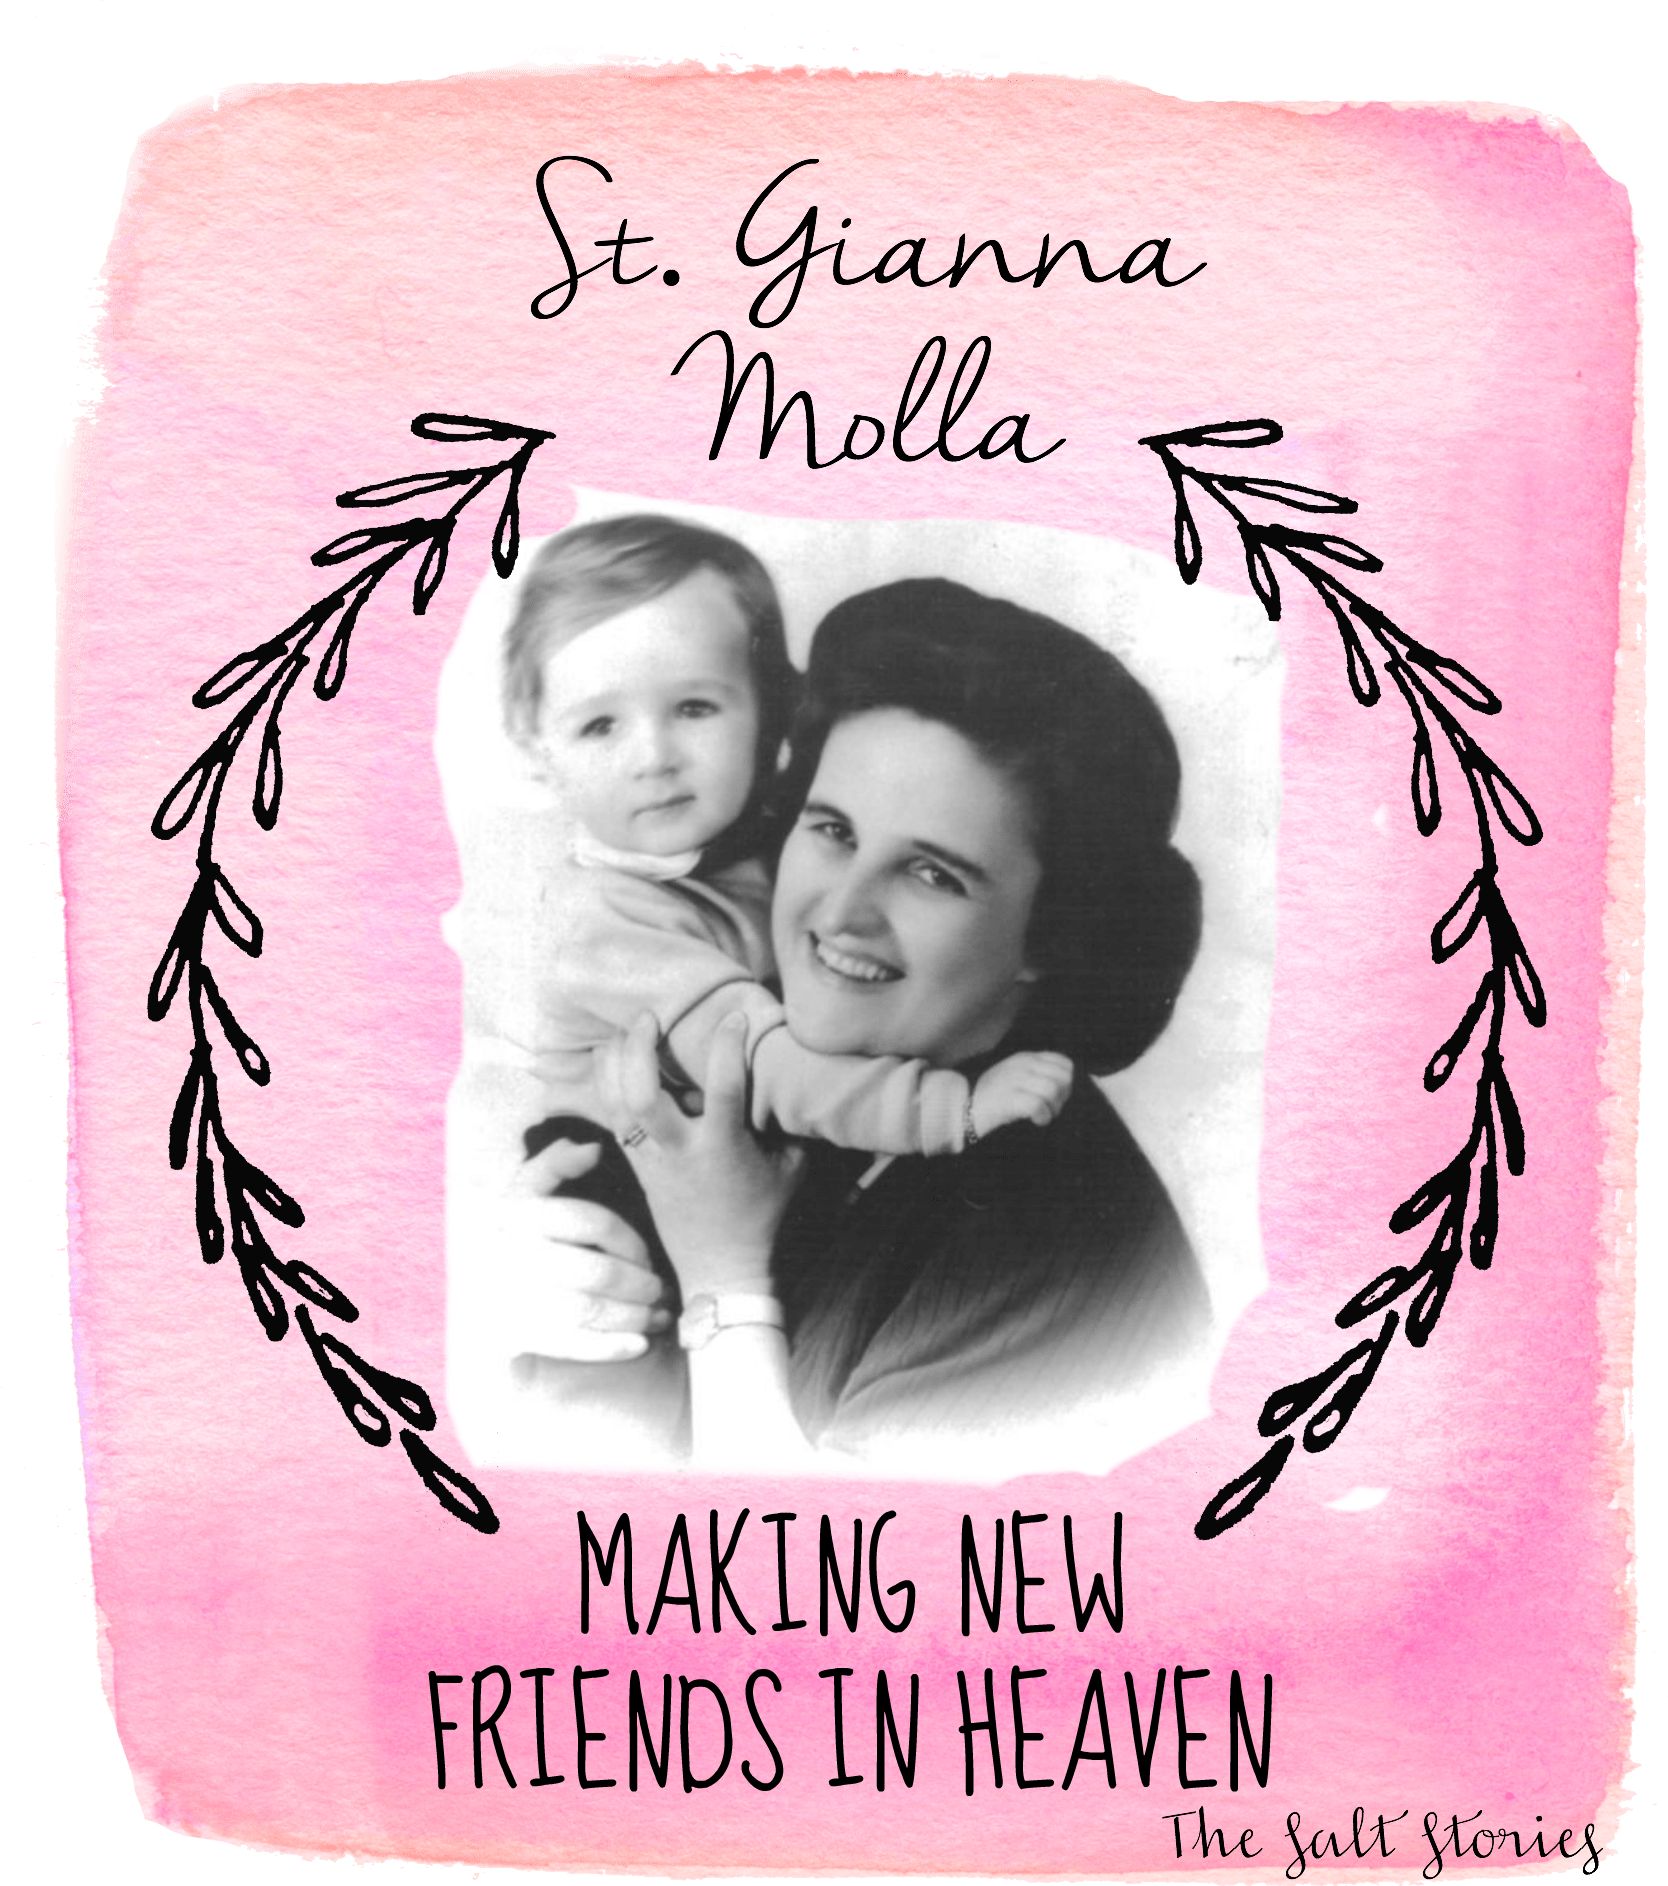 St. Gianna: Making New Friend's in heave - The Salt Stories